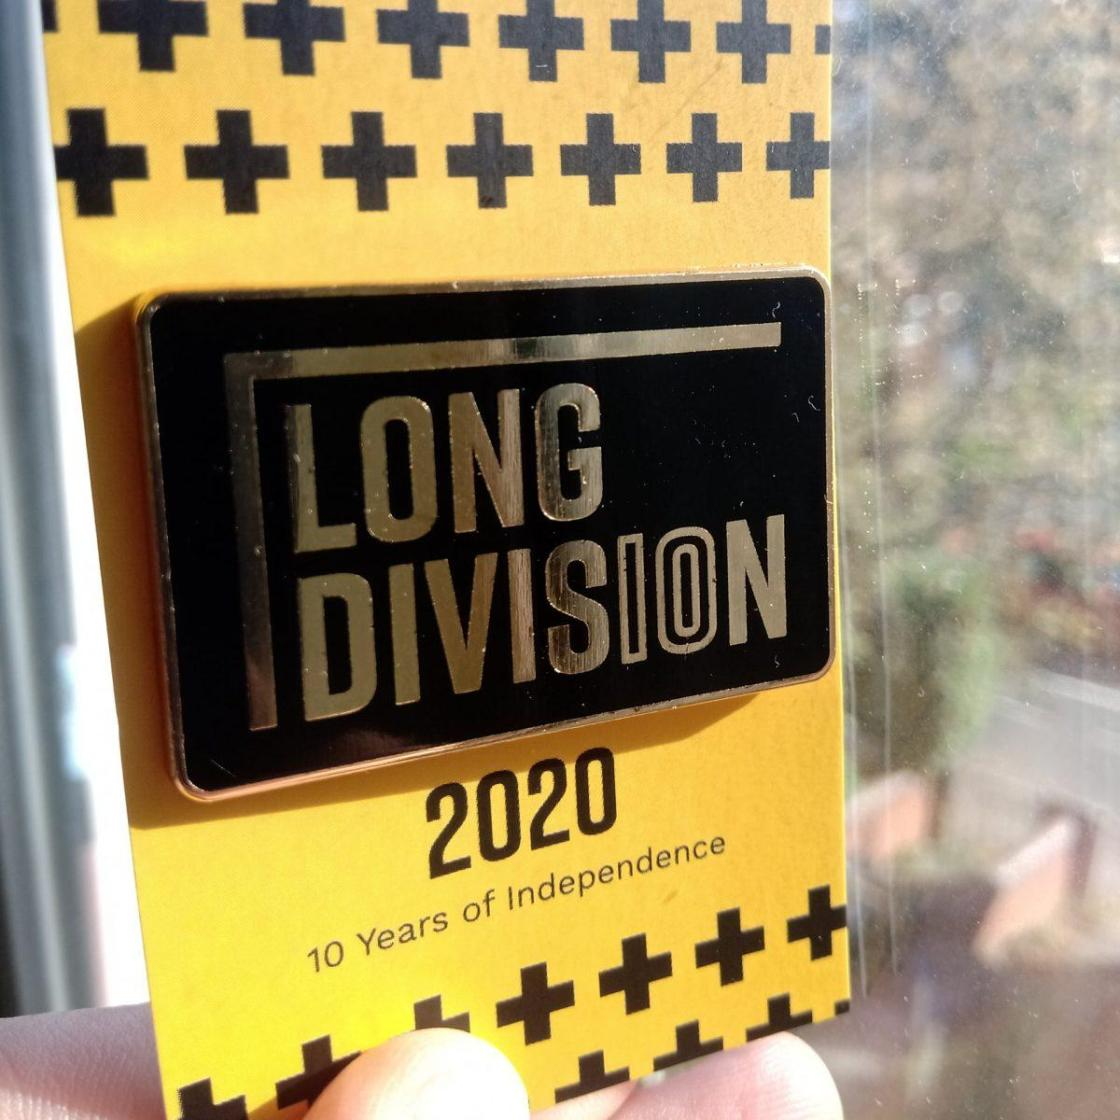 Our celebratory 10 years gold enamel badges have arrived! They are real chunky f...